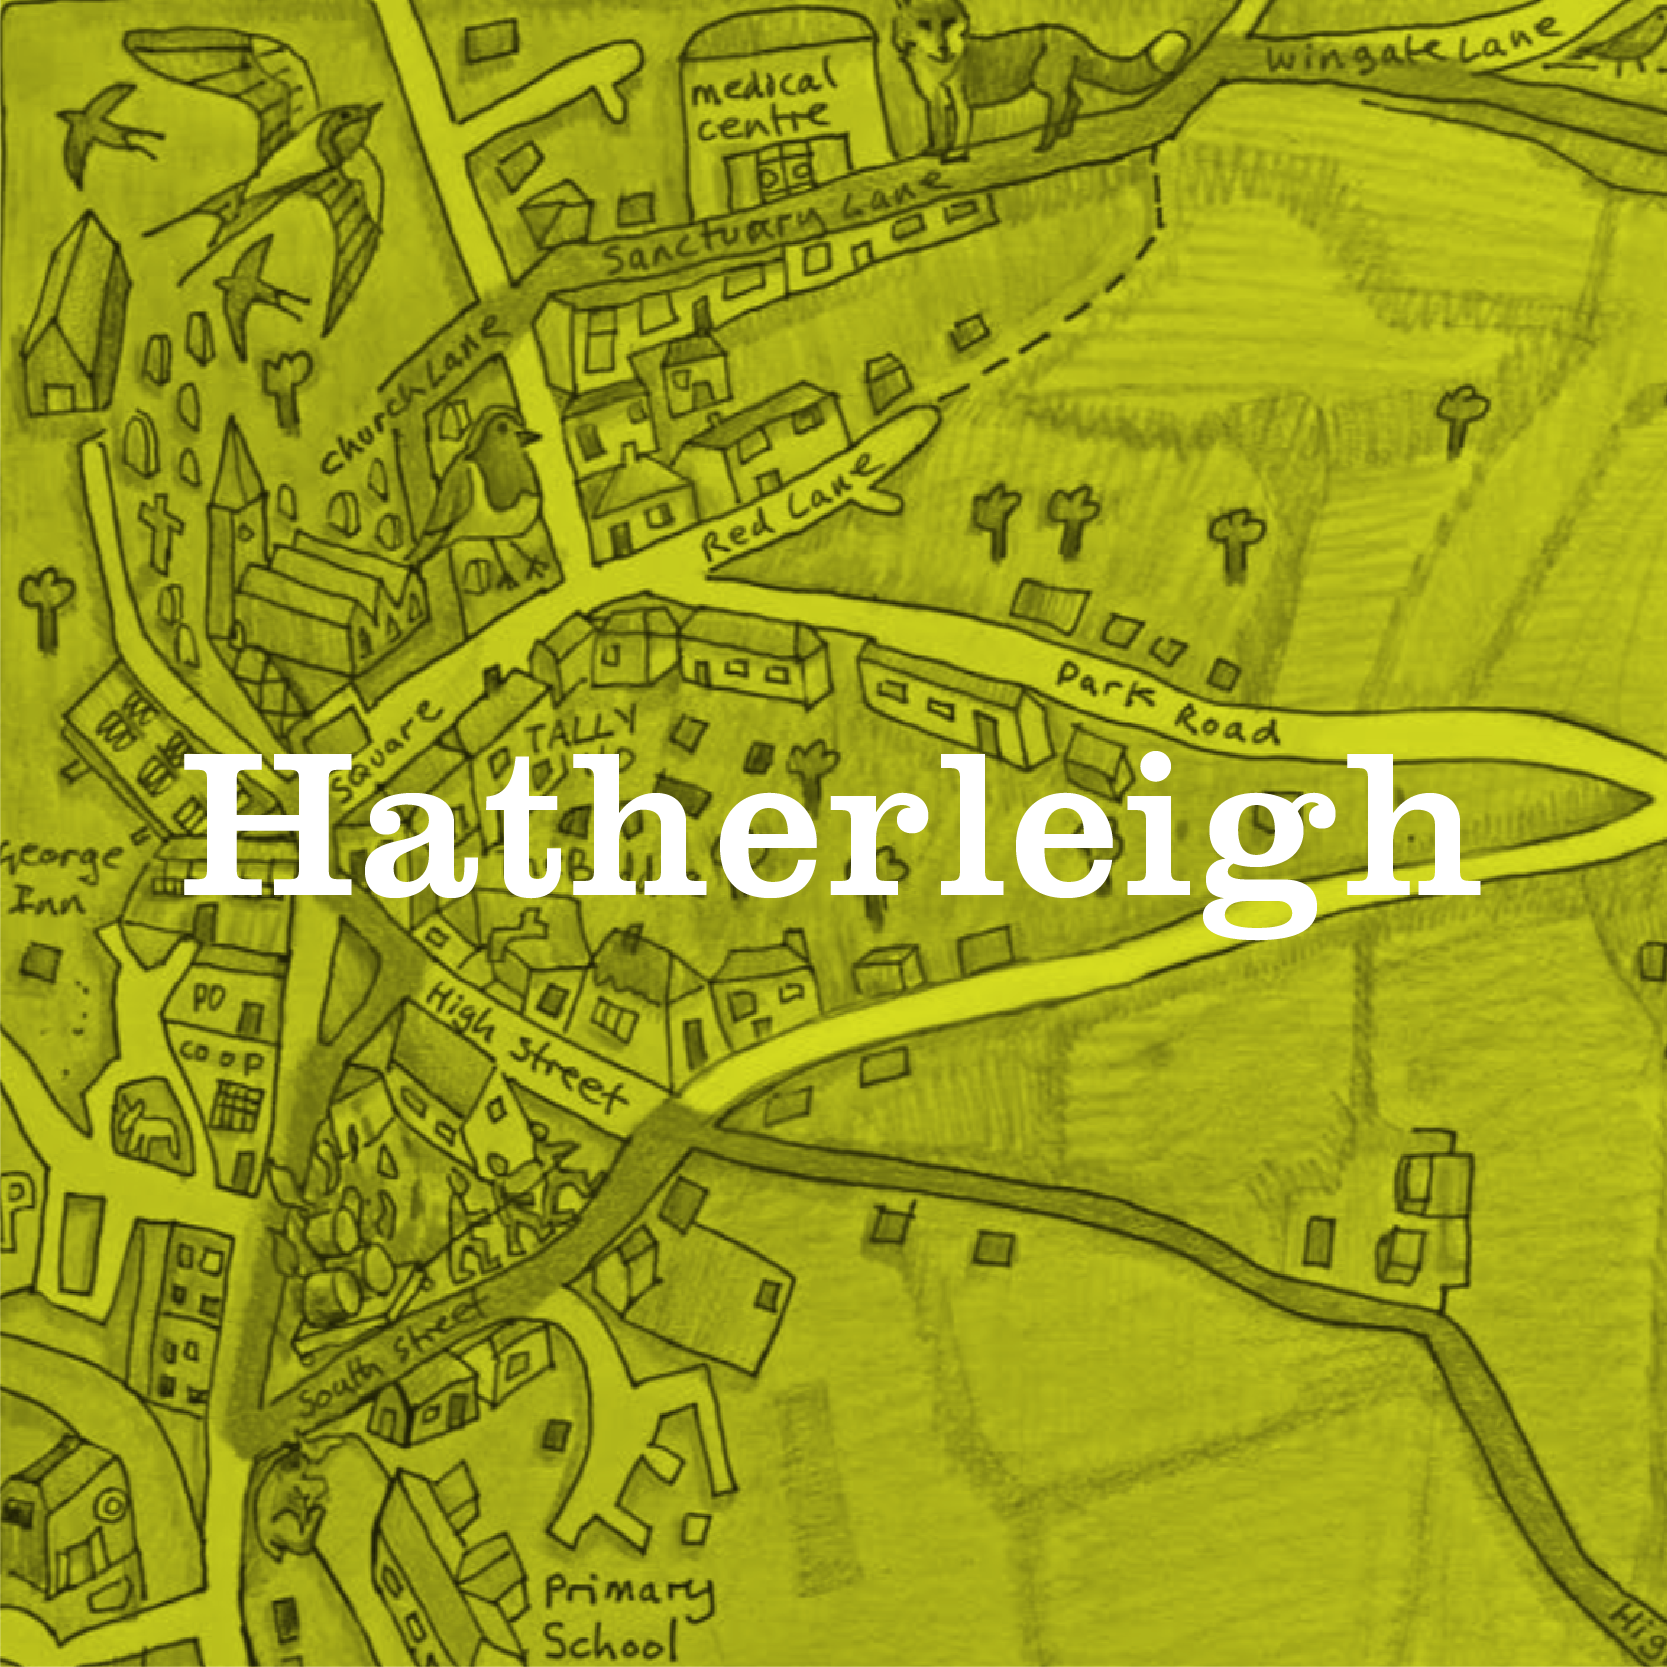 Beaford, Community Trails, Hatherleigh